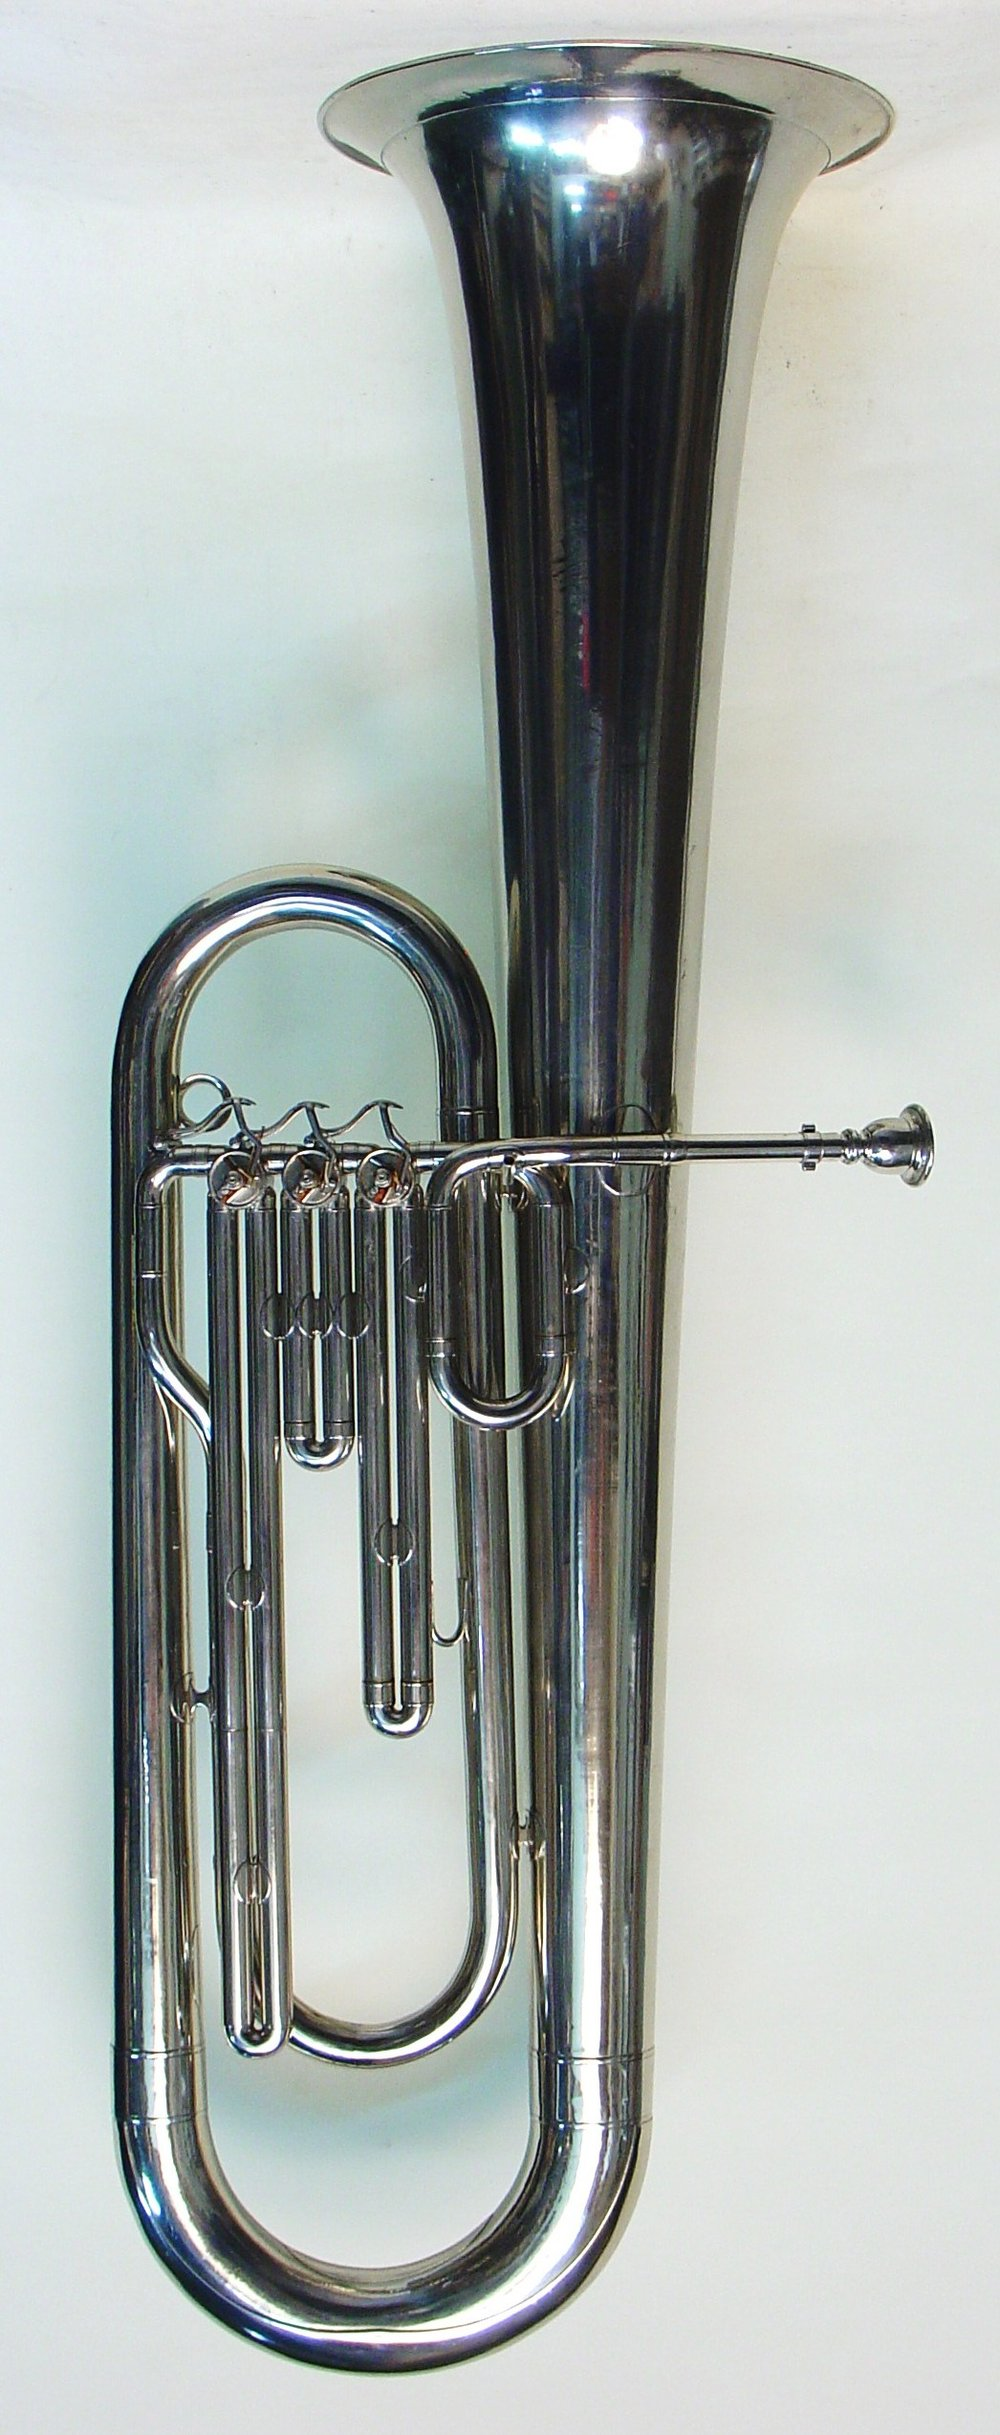 Tuba with Bell Up